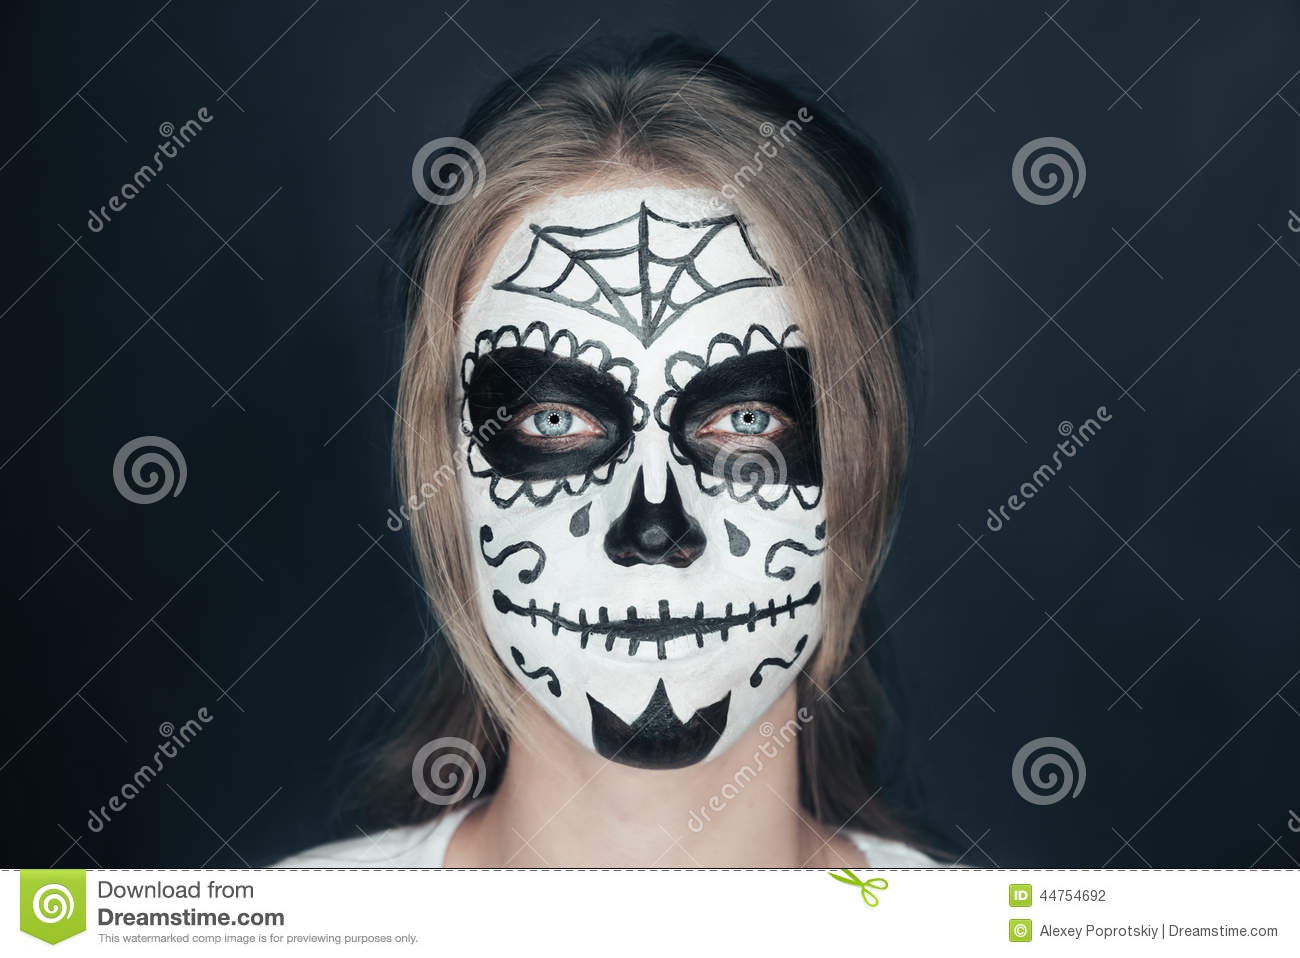 portrait of smiling young woman with sugar skull makeup halloween face art